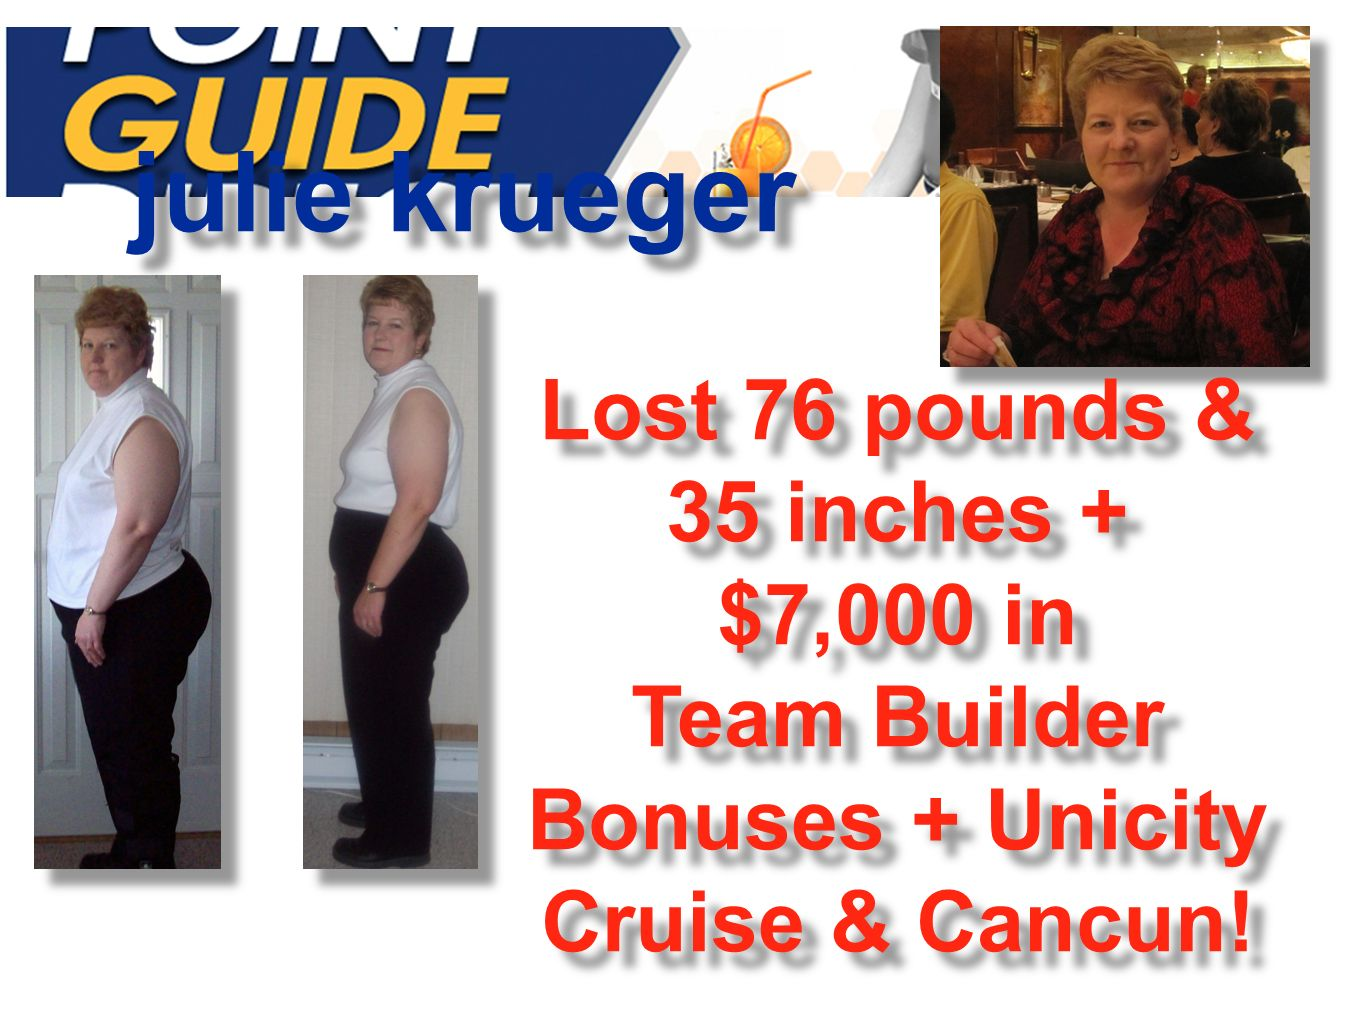 julie krueger Lost 76 pounds & 35 inches + $7,000 in Team Builder Bonuses + Unicity Cruise & Cancun! Lost 76 pounds & 35 inches + $7,000 in Team Build